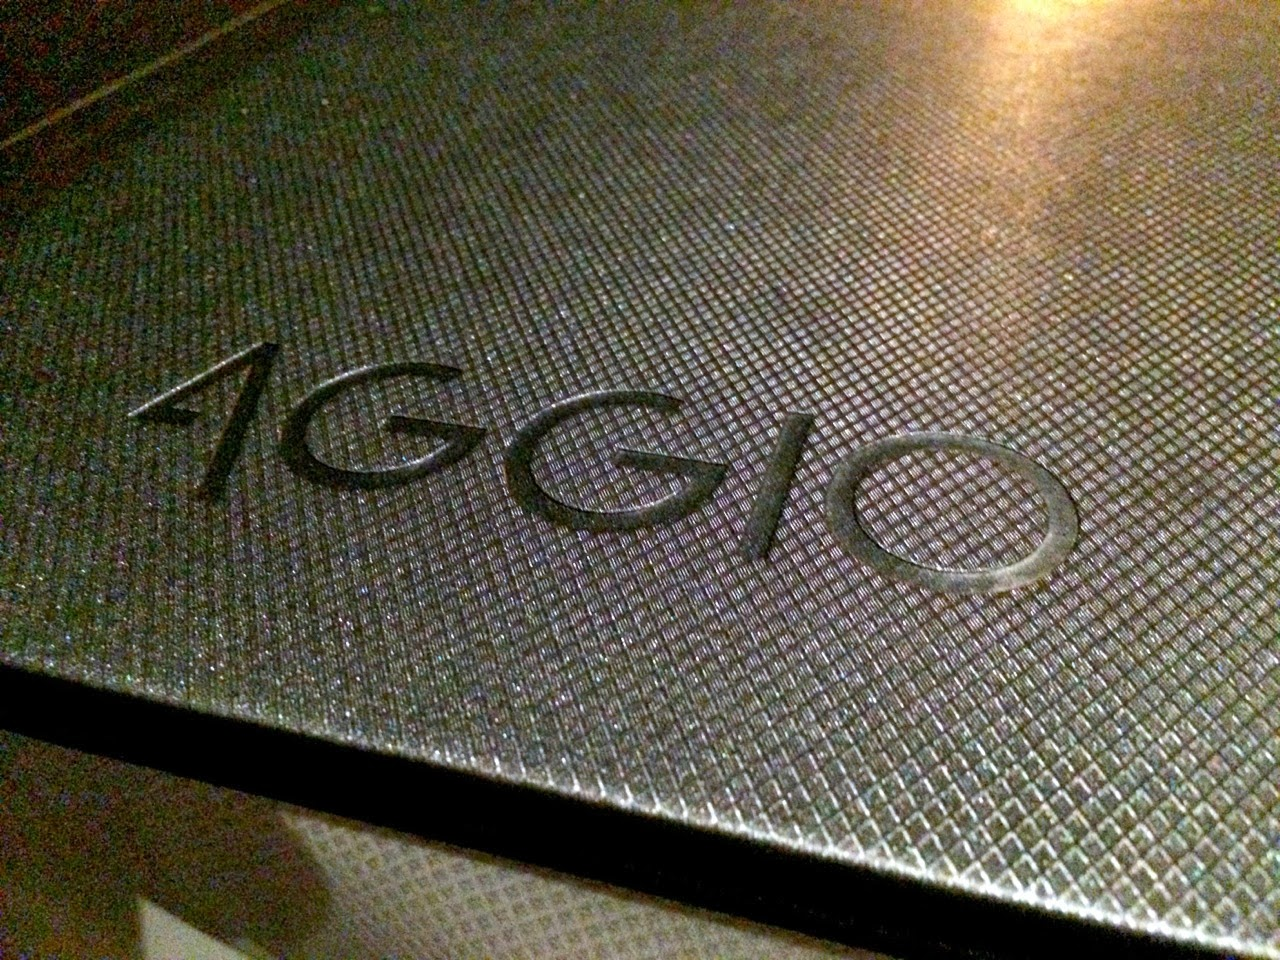 Aggio restaurant review